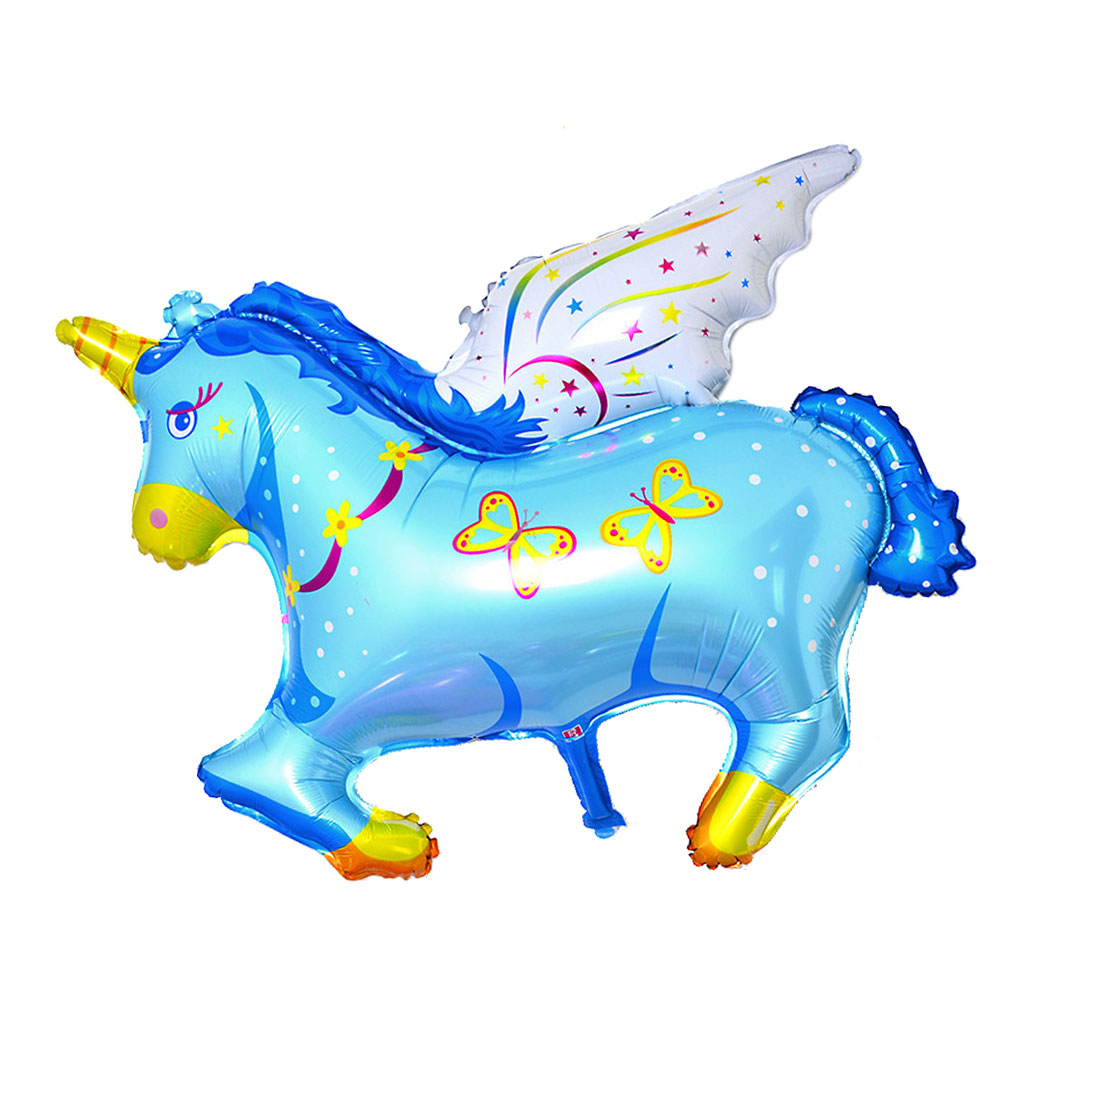 Wedding Party Ornament Foil Horse Design Inflation Helium Balloon Blue 14.6 Inch